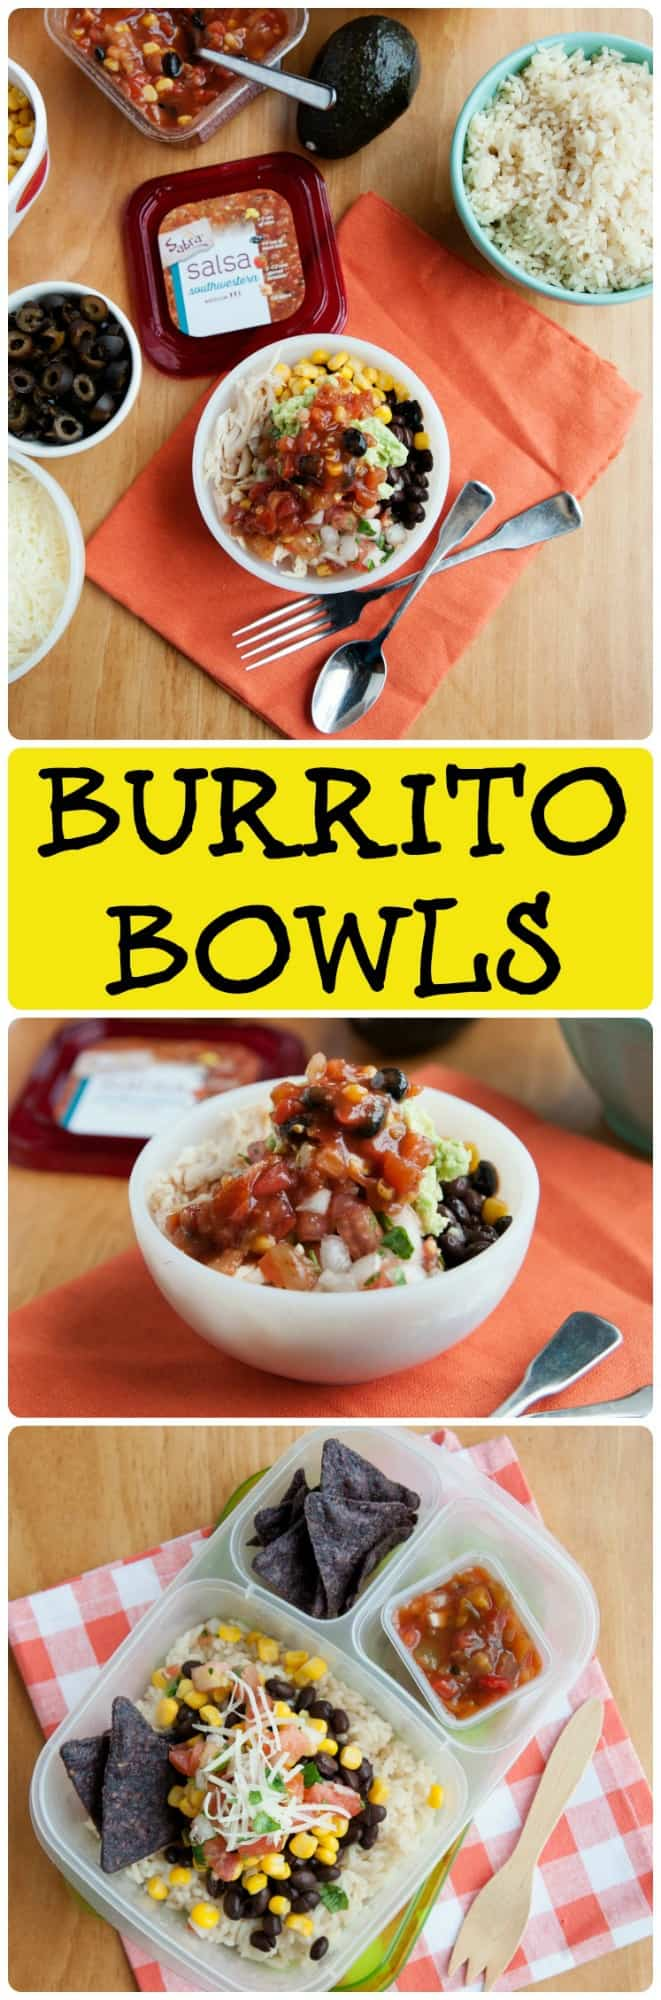 The idea of a burrito bowl isn't new, but packing these Lunchbox Burrito Bowls are sure to get your kids excited about eating lunch!